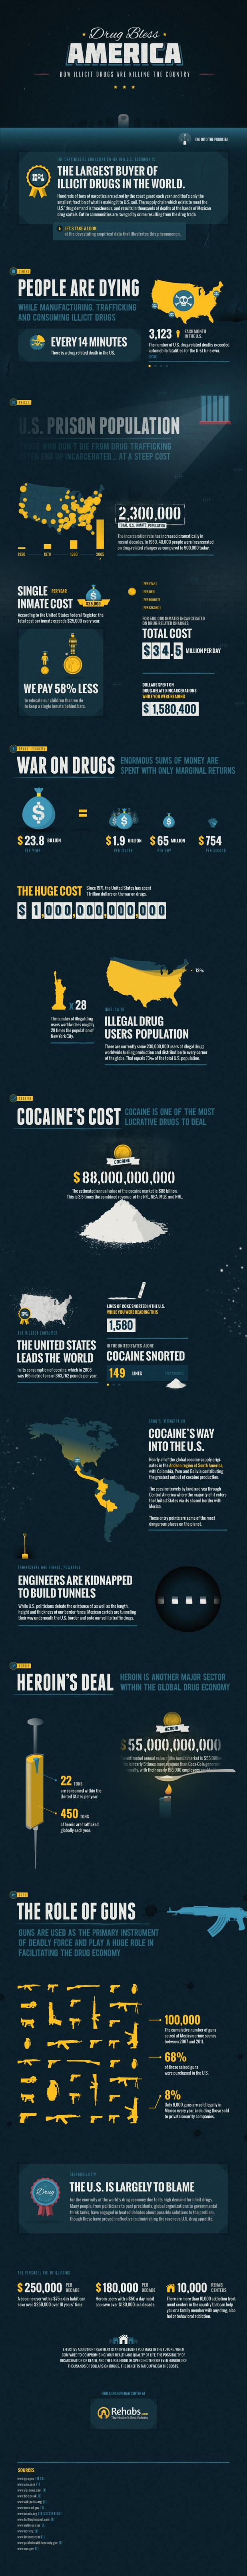 The Drug War's Impact on the American Economy